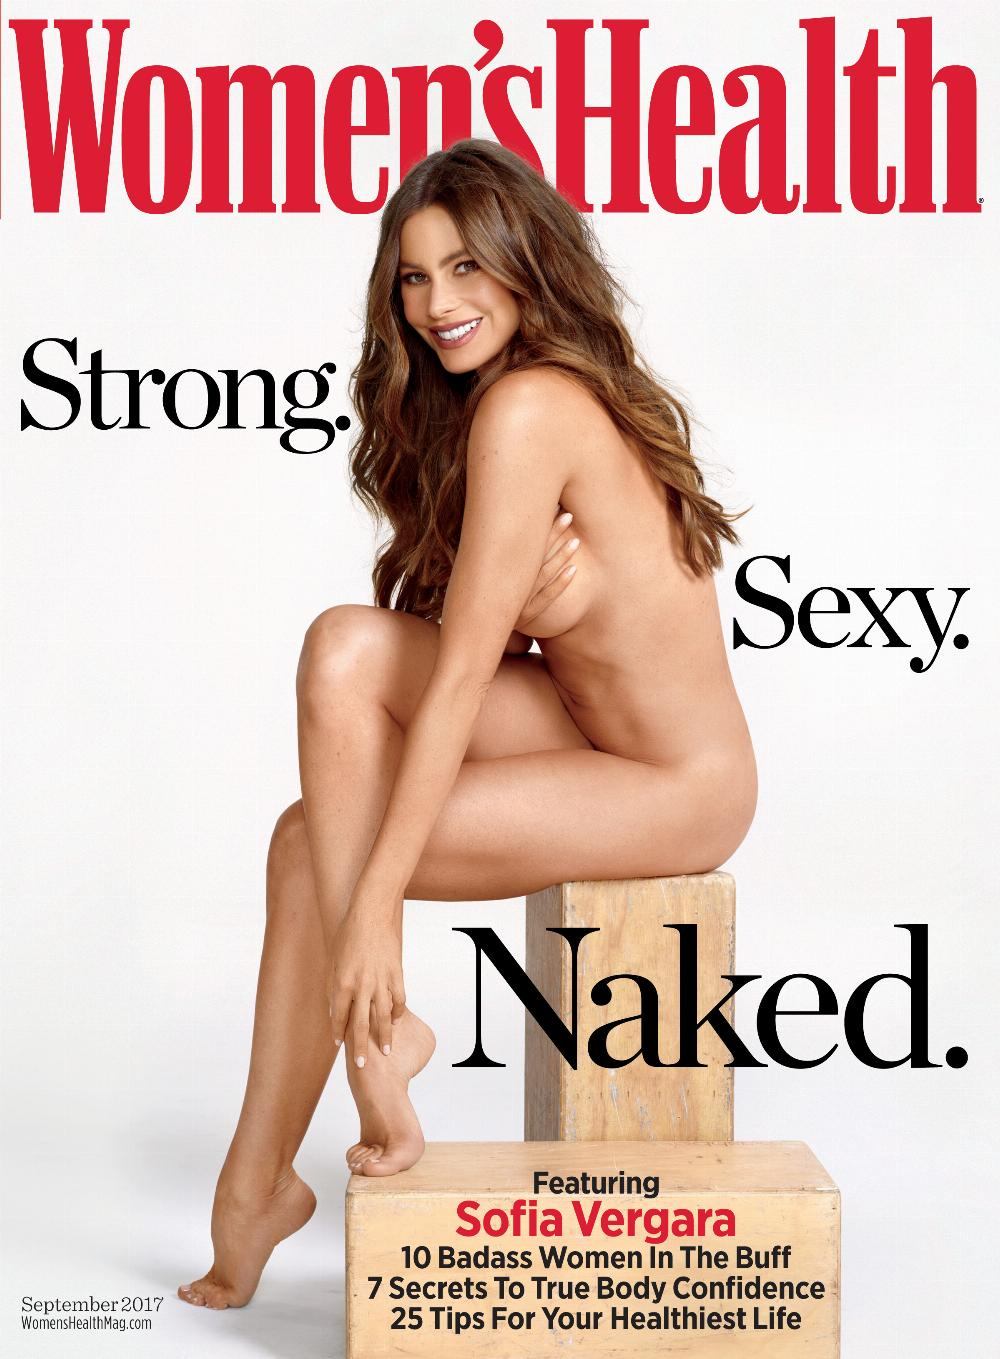 Sofia Vergara explains why she decided to pose nude on a magazine cover at 45.